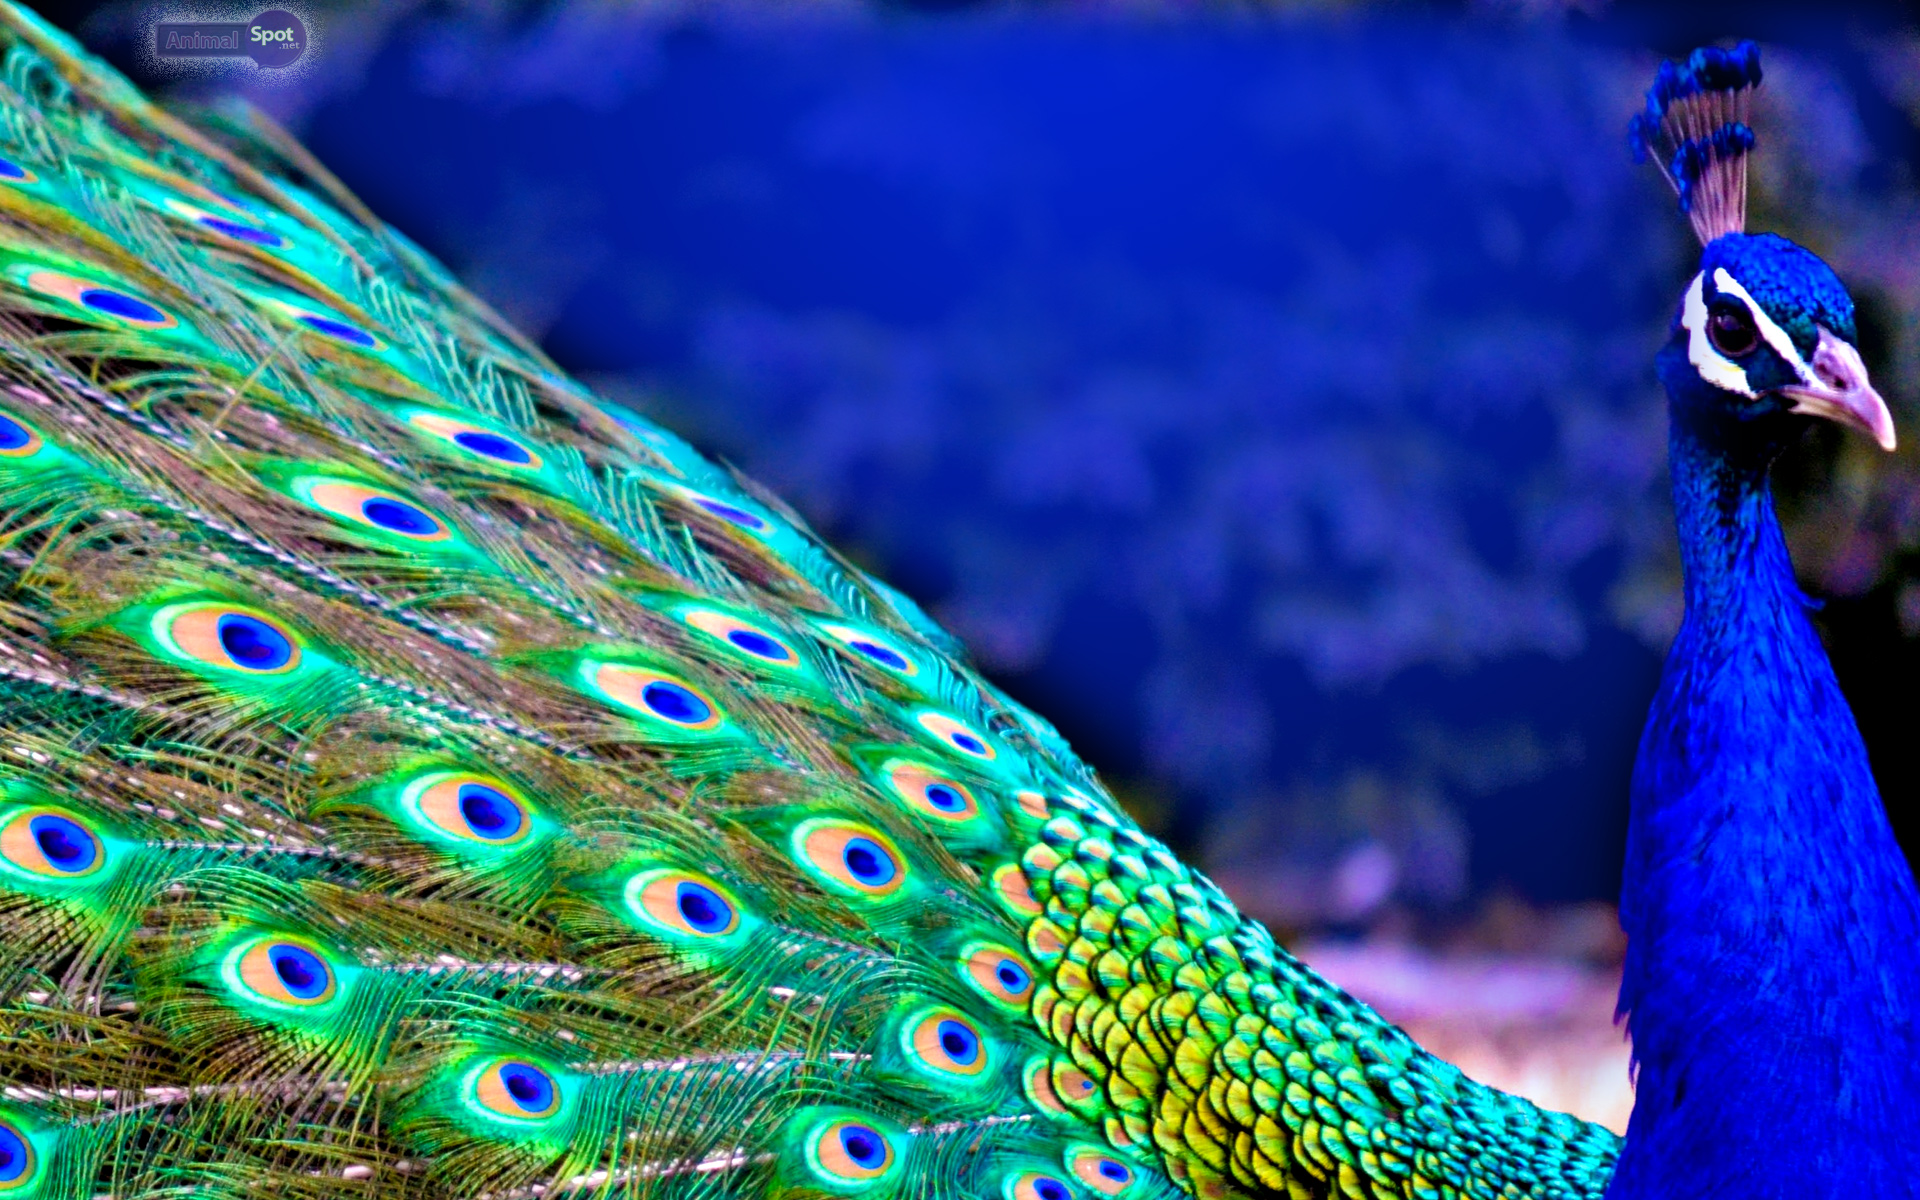 Peacock wallpapers - photo#8